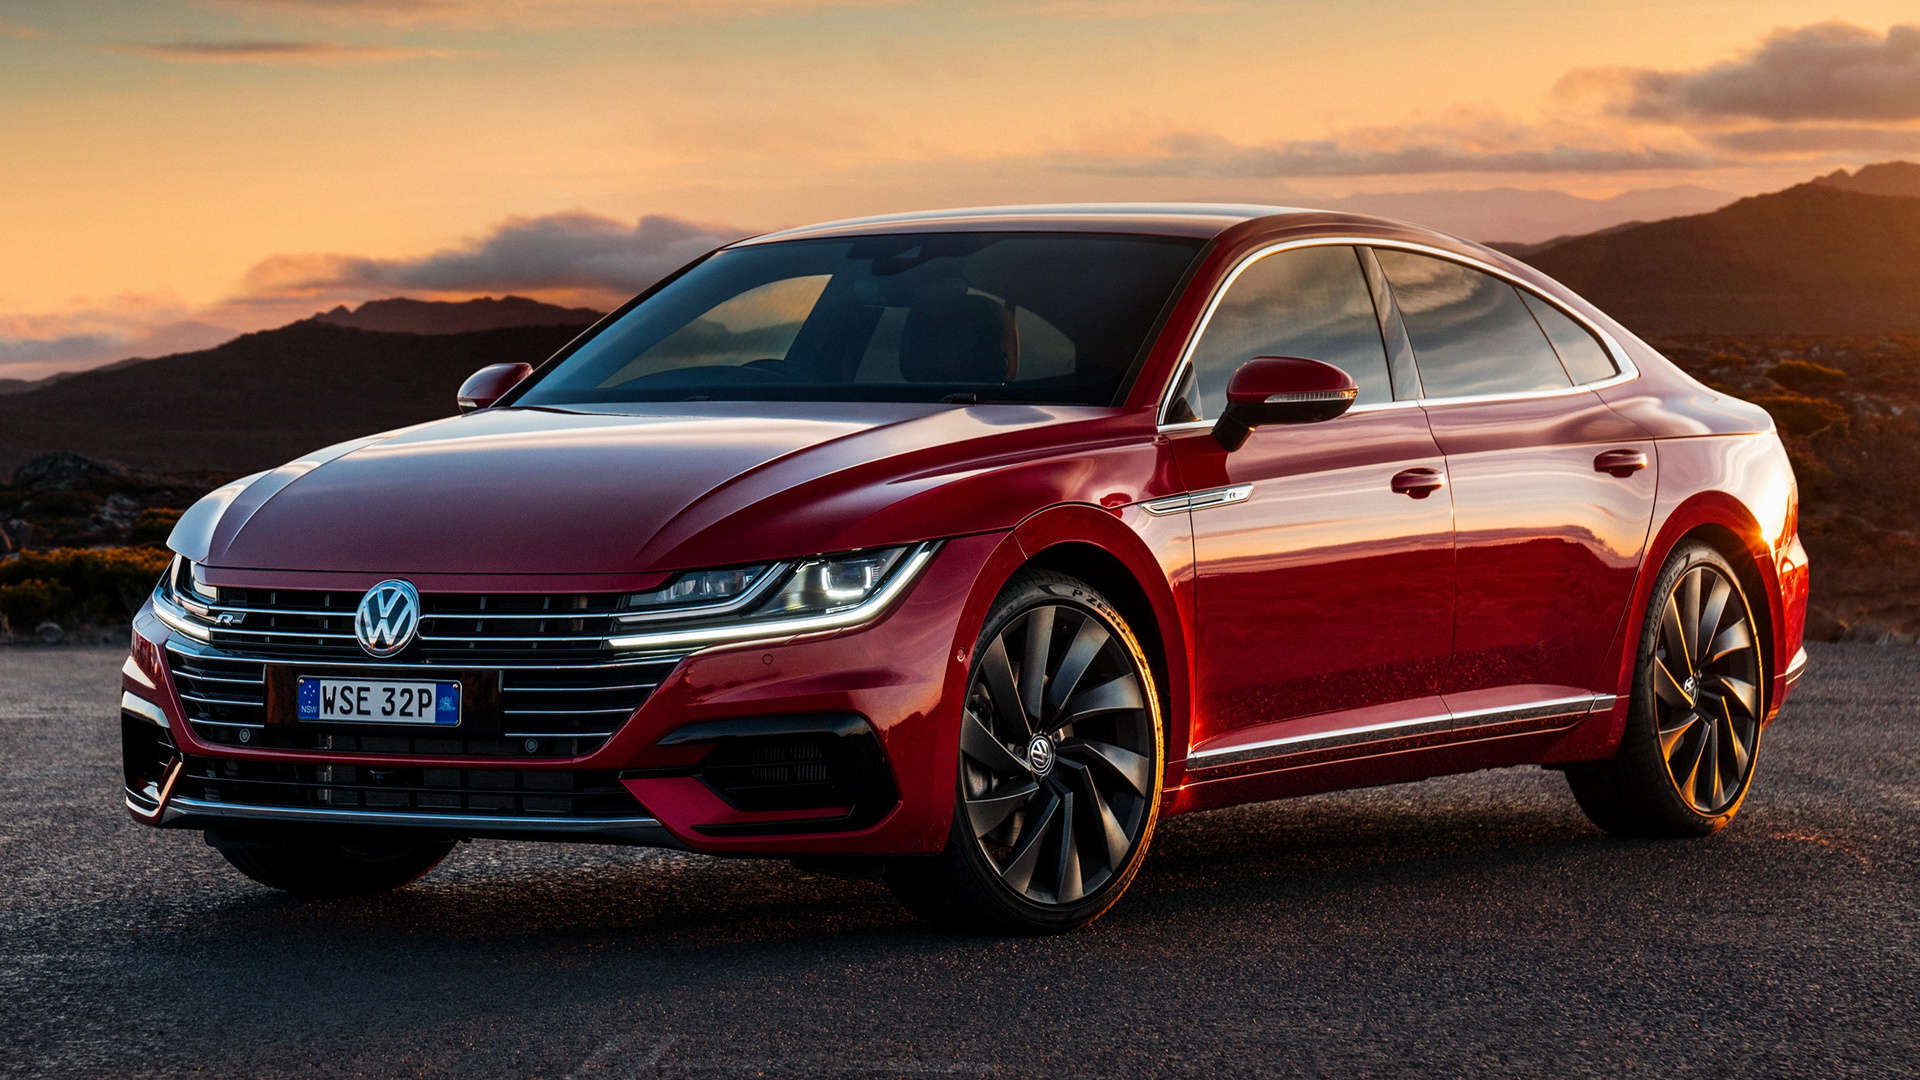 1920x1080 - Volkswagen Arteon Wallpapers 8